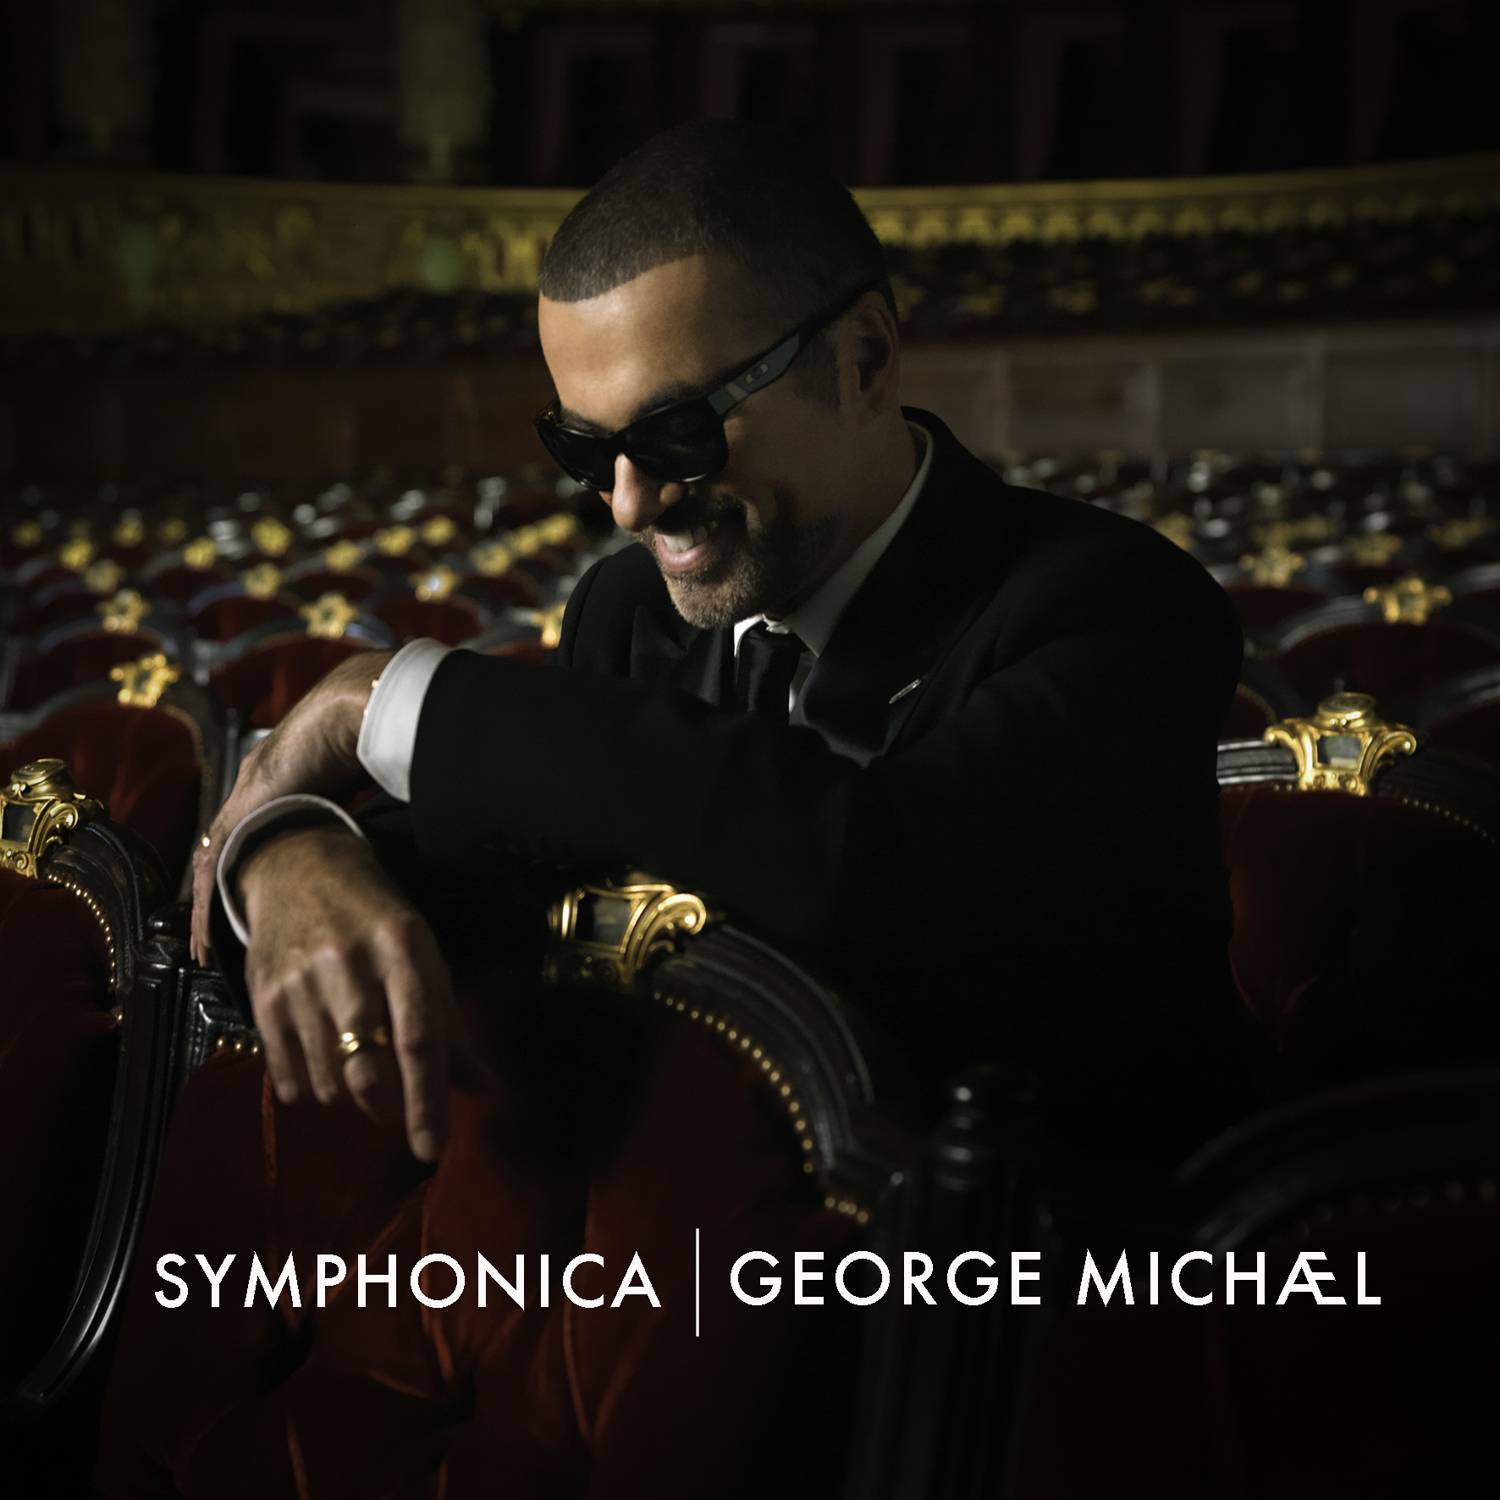 """Symphonica"" is the latest release by George Michael."